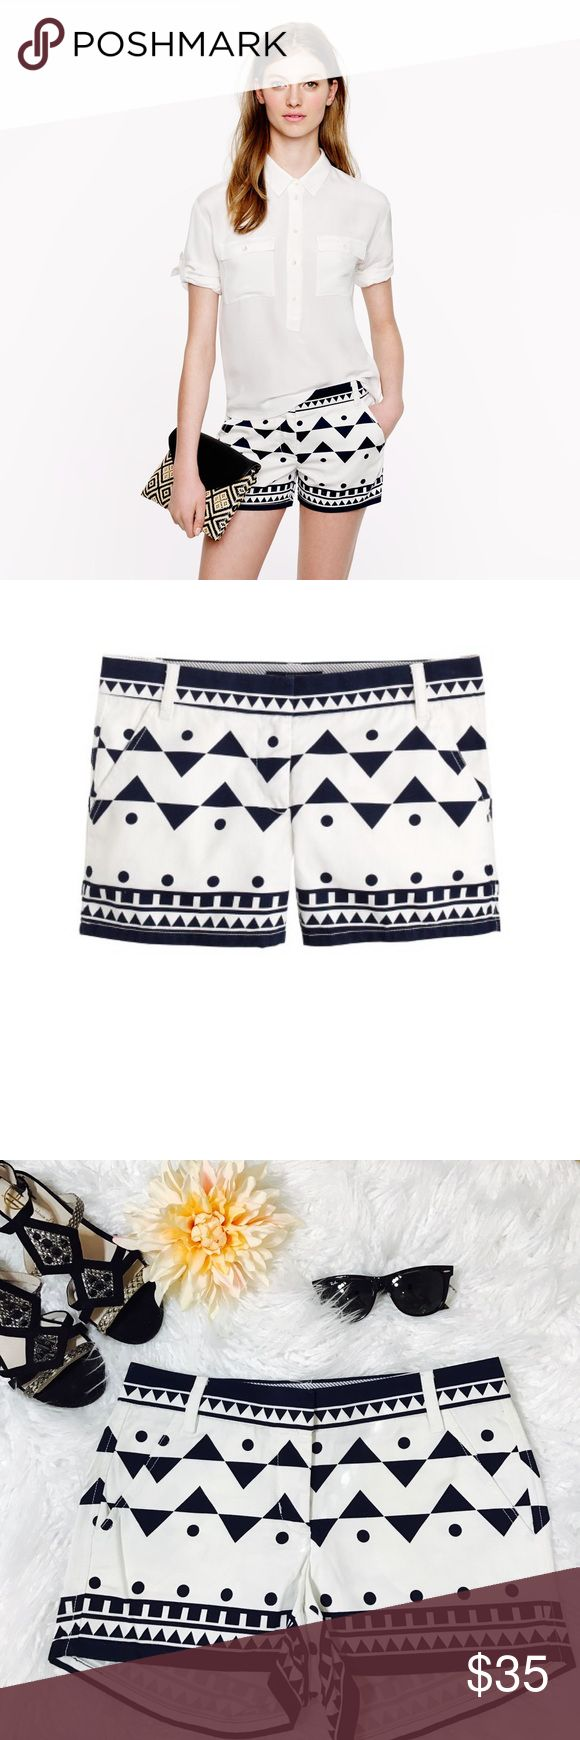 """J.Crew 3"""" chino short in Roller girl Our designers were inspired to create this graphic geometric print after uncovering a photo from the '70s of an effortlessly cool girl sporting a black-and-white-printed romper and roller skates. We loved the print so much that we sprinkled it throughout our collection, and each piece features a slightly different layout. Cotton. Sits just above hip. 3"""" inseam. Zip fly. Slant pockets, back welt pockets. Machine wash. Import. Laid flat across @ waist: 15""""…"""